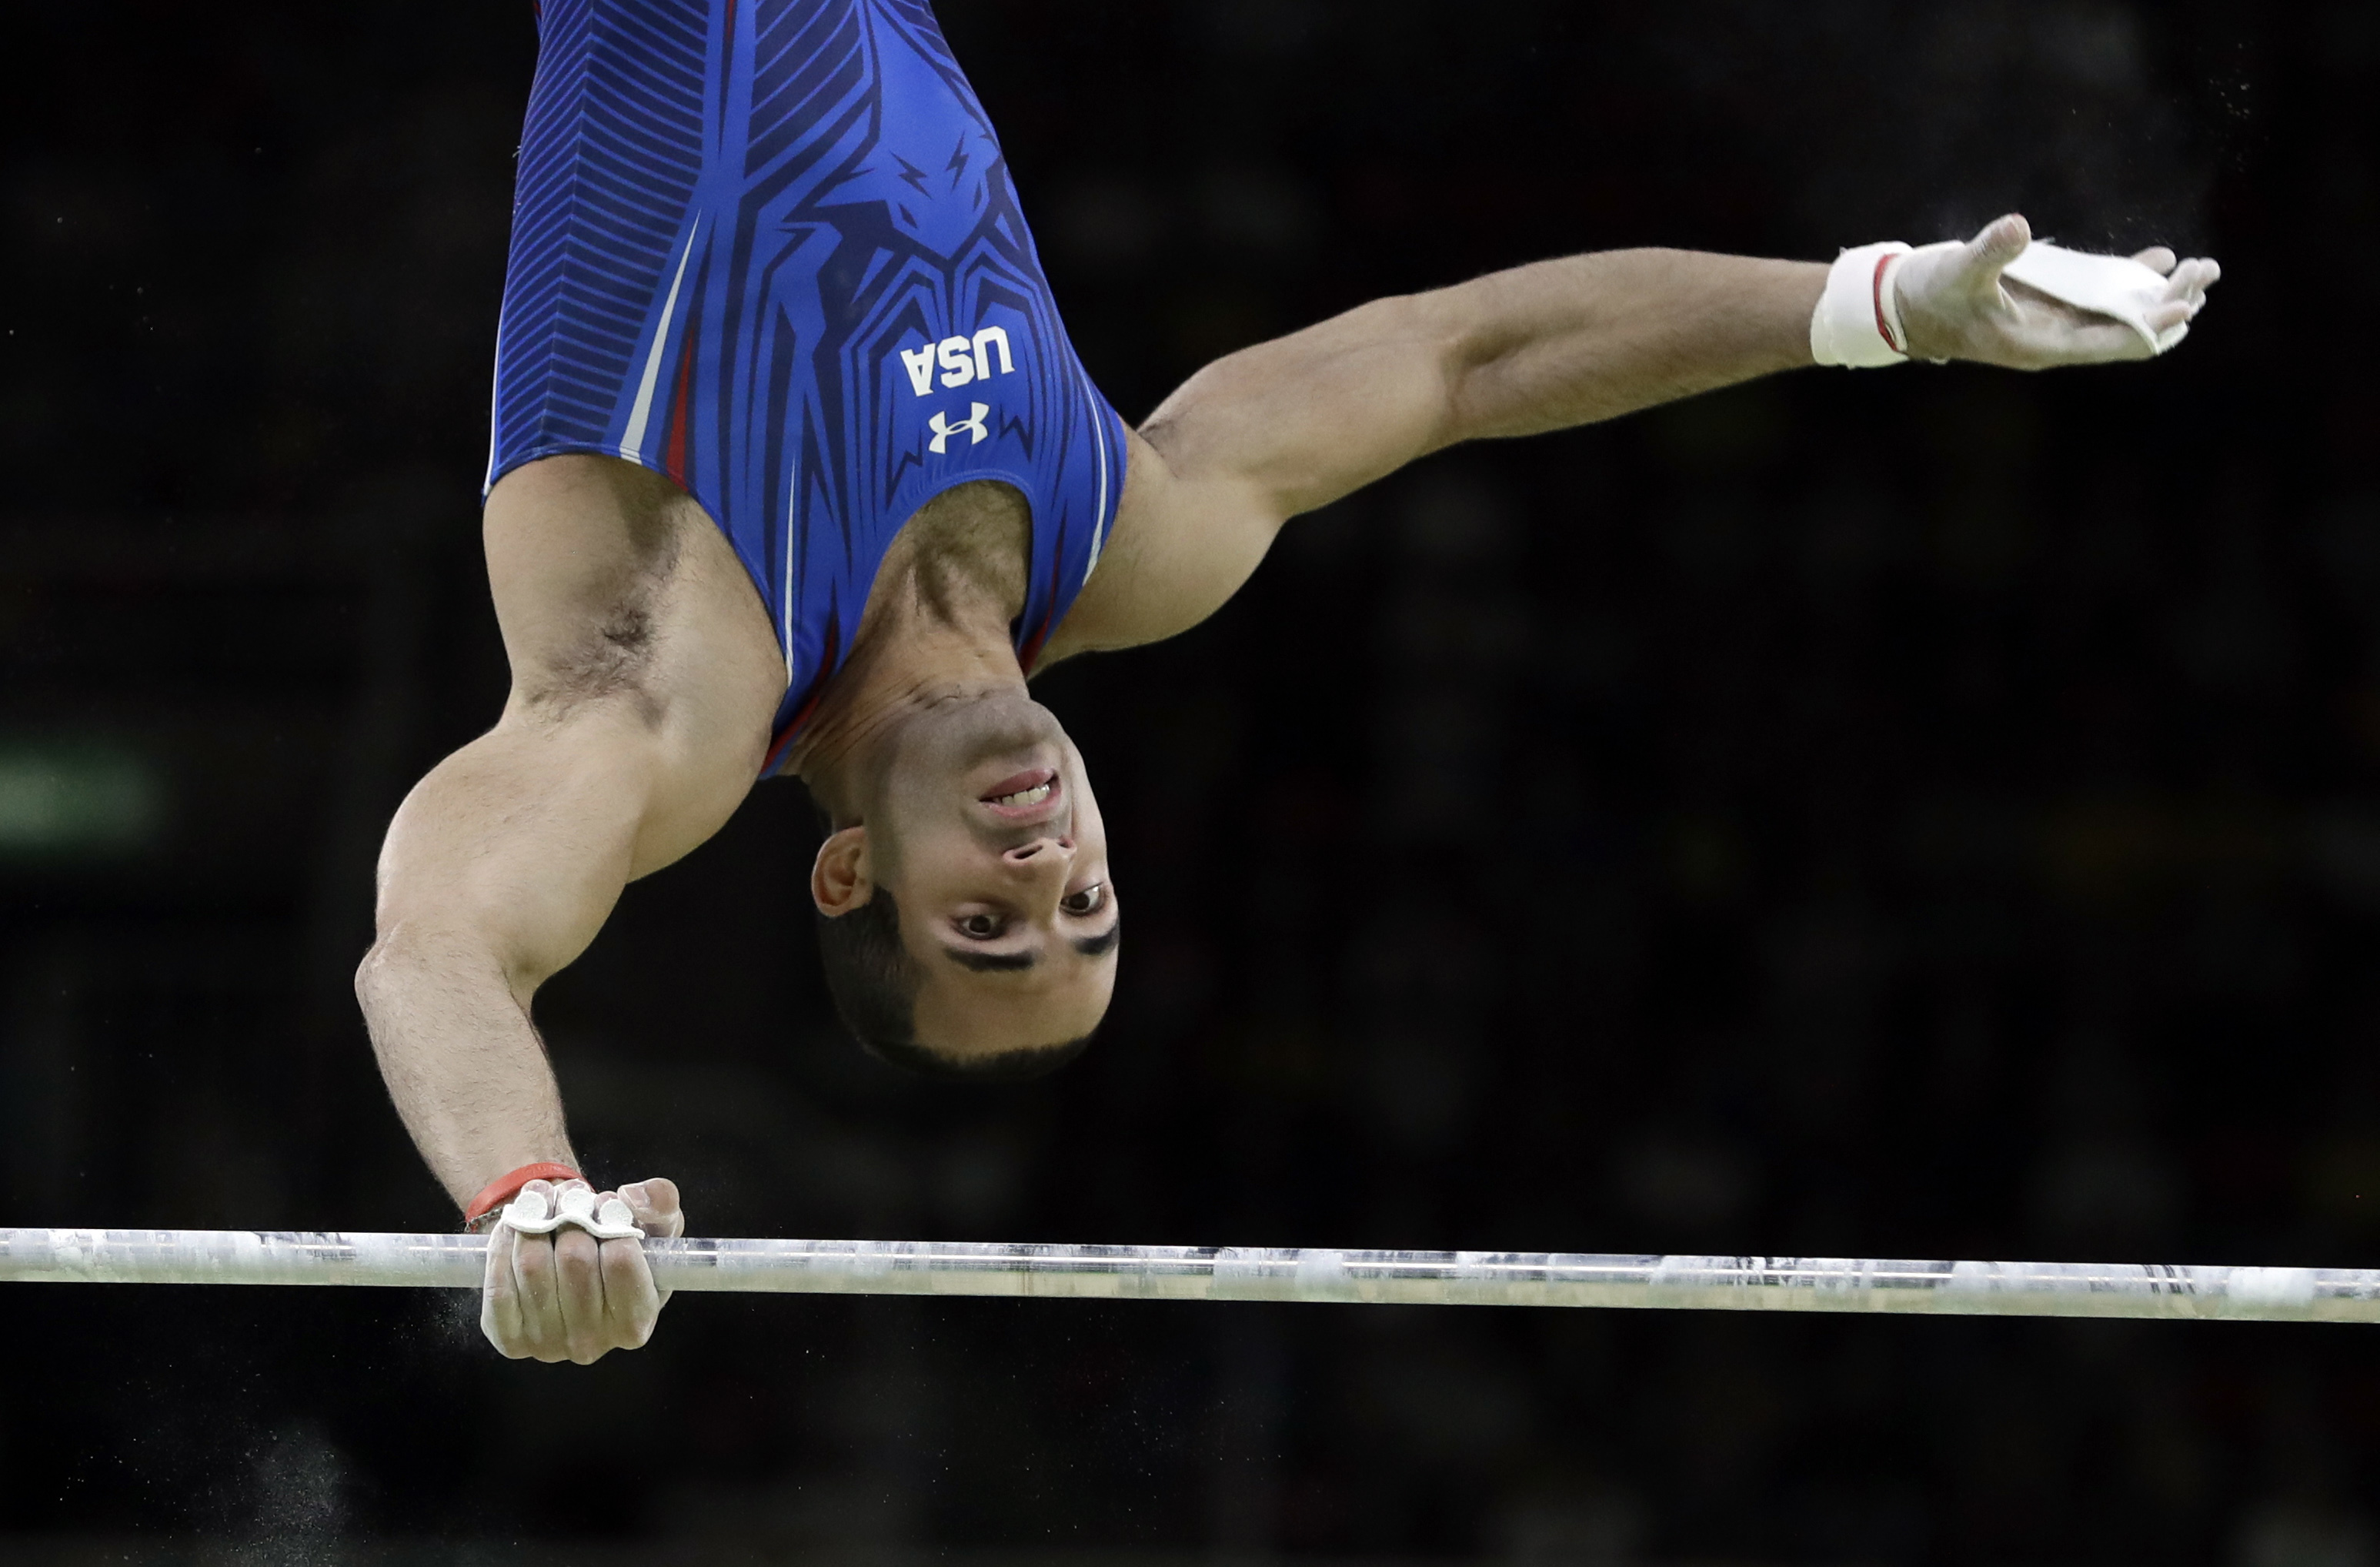 United States' Danell Leyva performs on the horizontal bar during the artistic gymnastics men's apparatus final at the 2016 Summer Olympics in Rio de Janeiro, Brazil, Tuesday, Aug. 16, 2016. (AP Photo/Rebecca Blackwell)